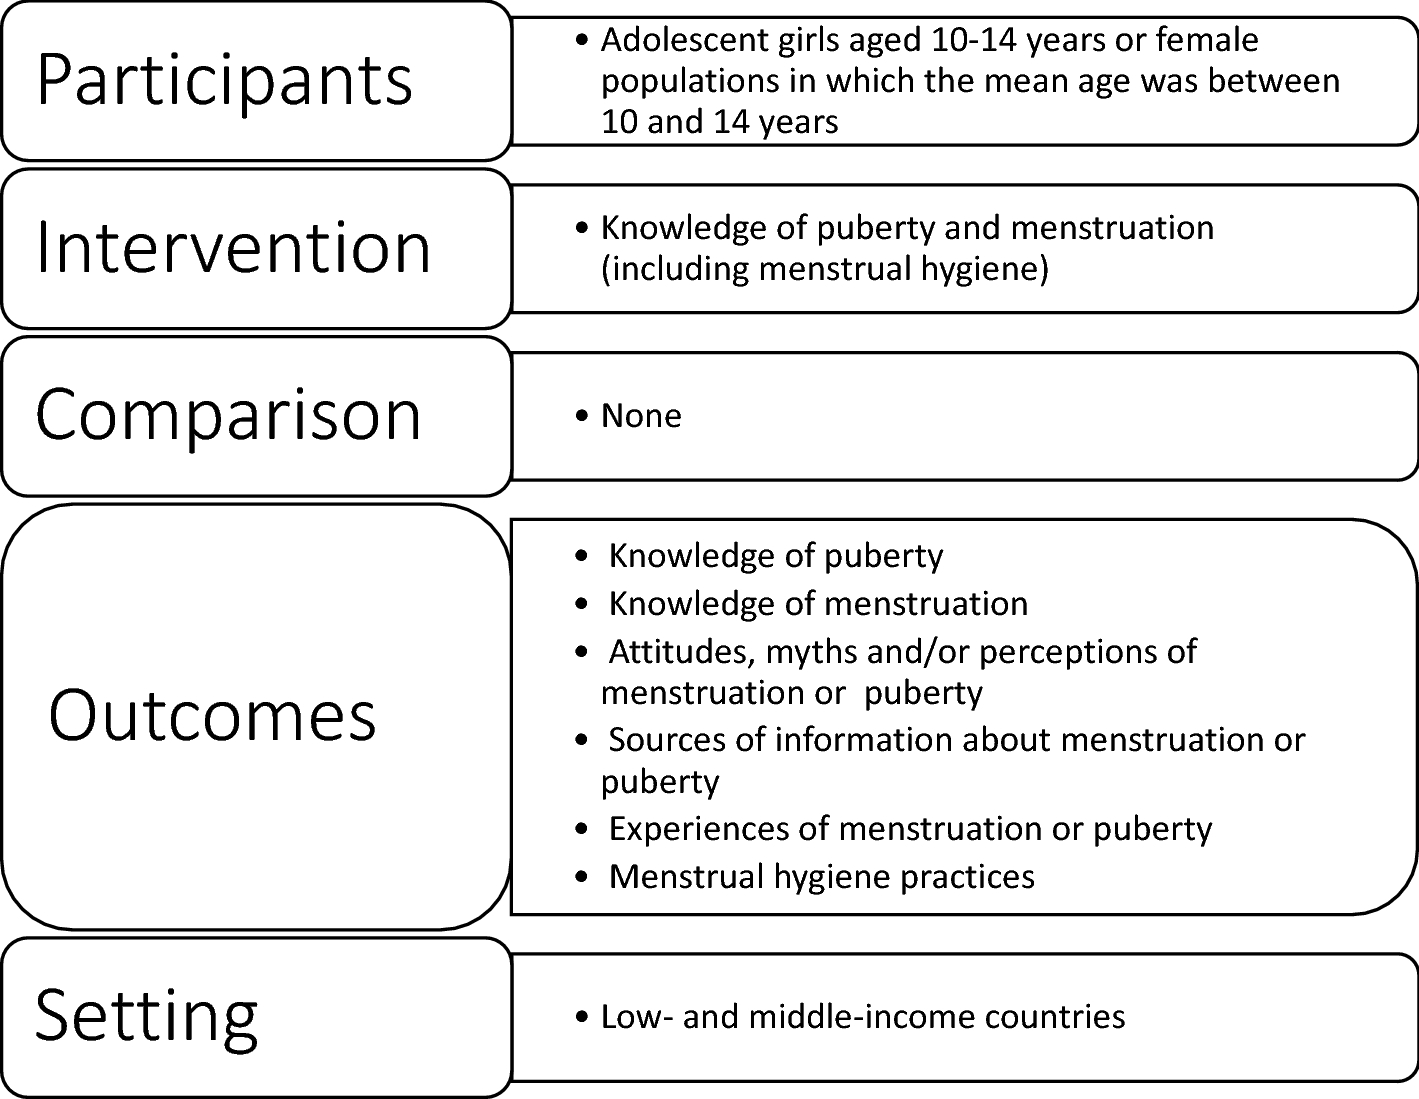 Puberty and menstruation knowledge among young adolescents